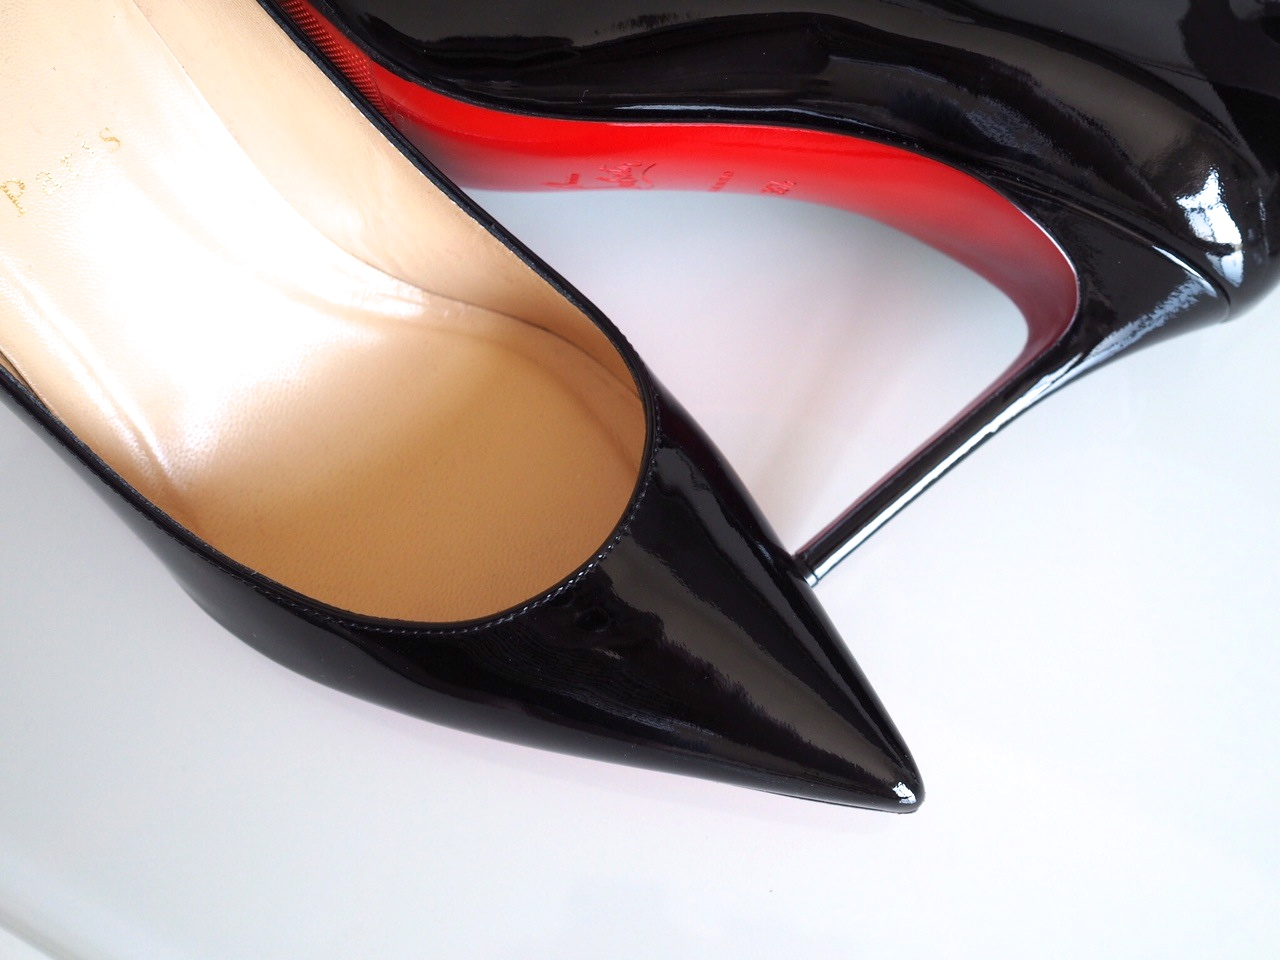 0779fb3759f My second regret purchase is another pair from Louboutin-because they re so  god damn uncomfortable. I also own the Pigalle style and they re pretty  much the ...